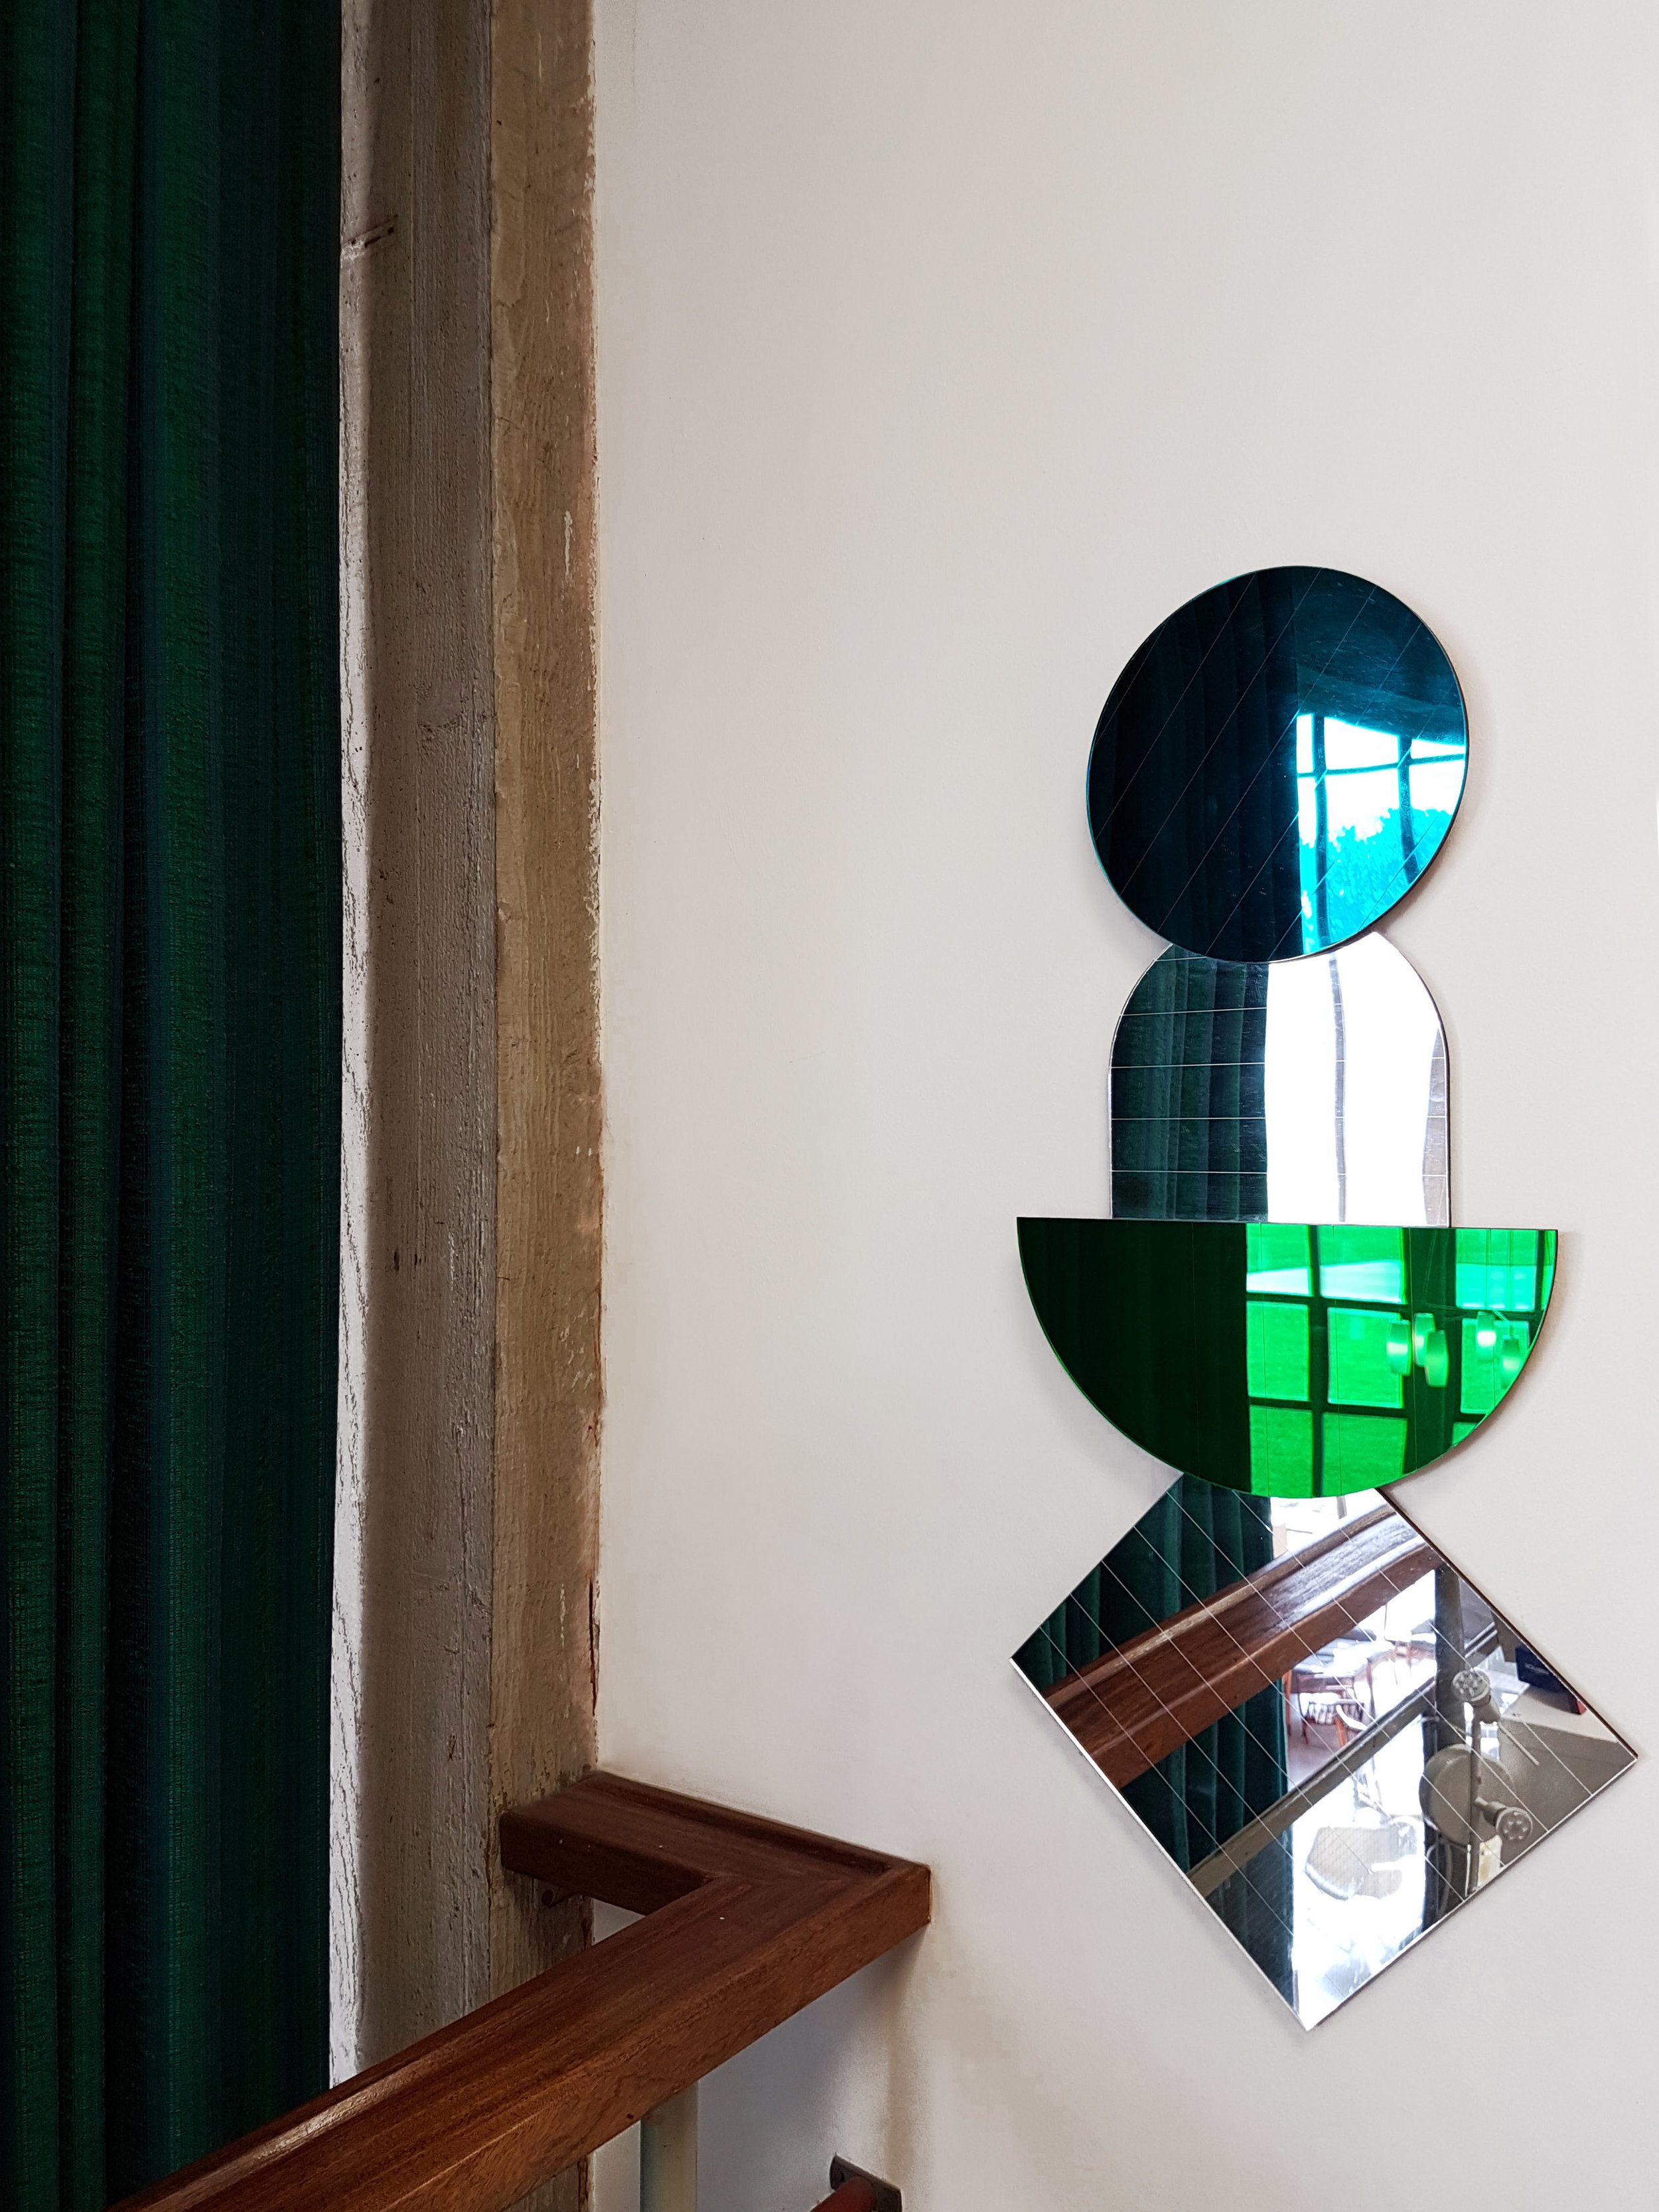 LAYER MIRRORS IN TEAL & EMERALD GREEN - Layer Mirrors looking particuarly oppulent next to the long emerald green curtains and concrete detailing. The four separate mirrors have been hung over each other to create a stacking display.